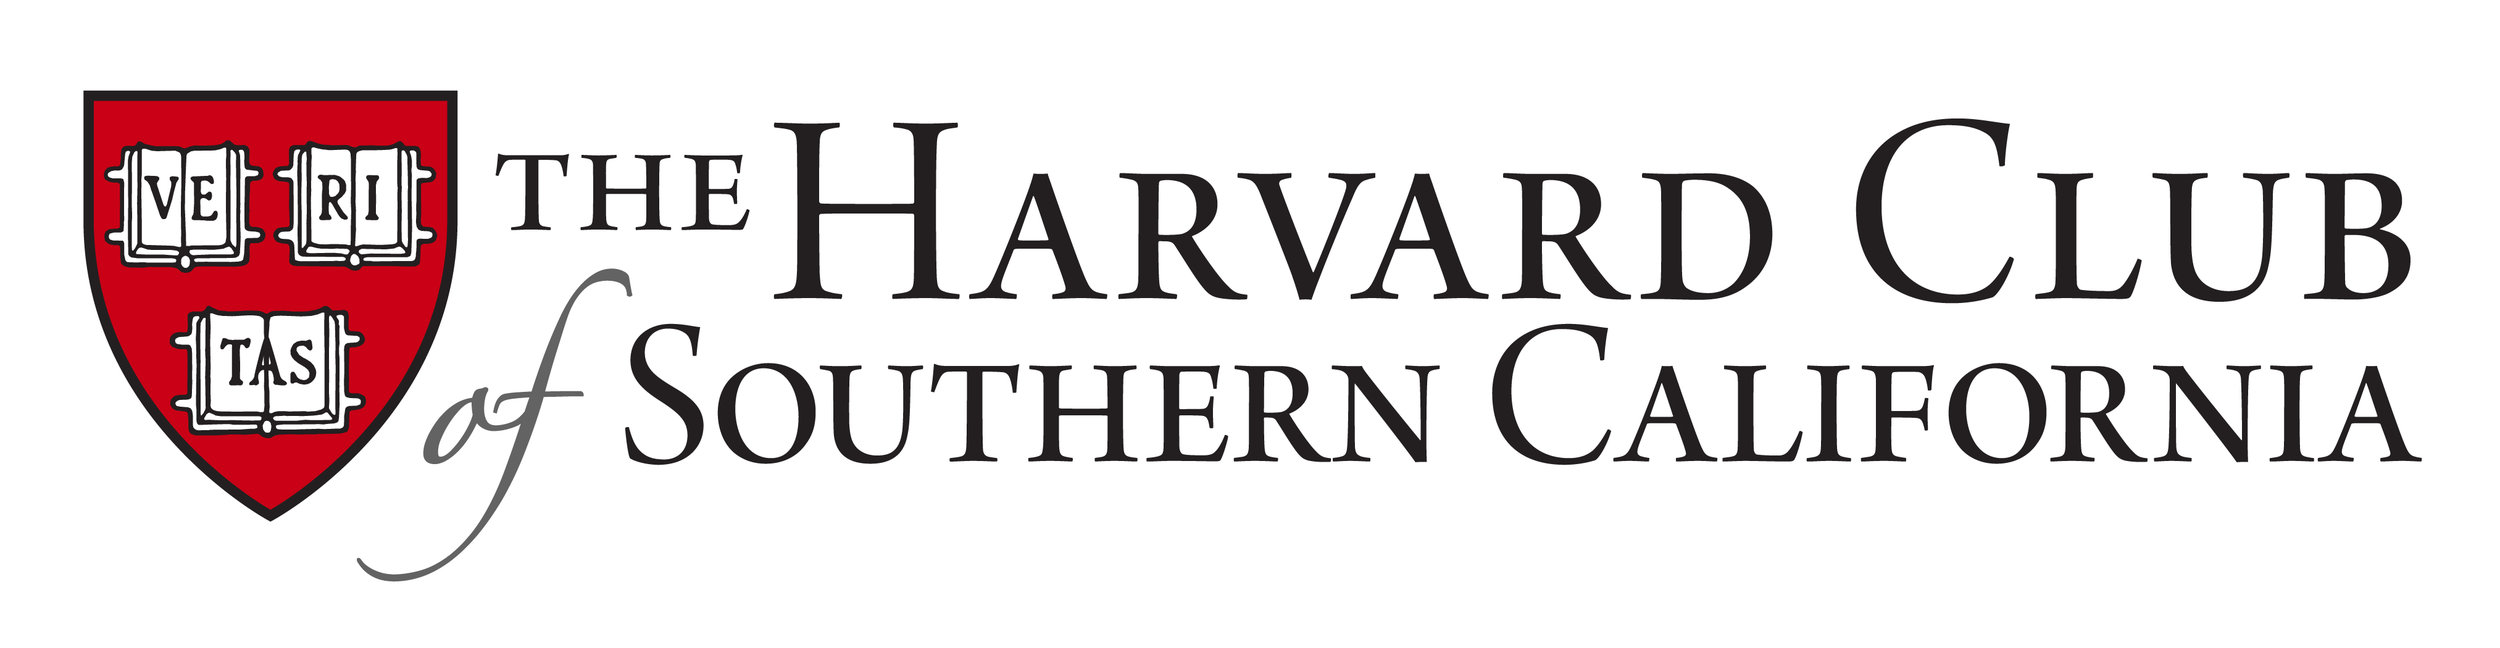 LOGO-HarvardClubSoCal.jpg